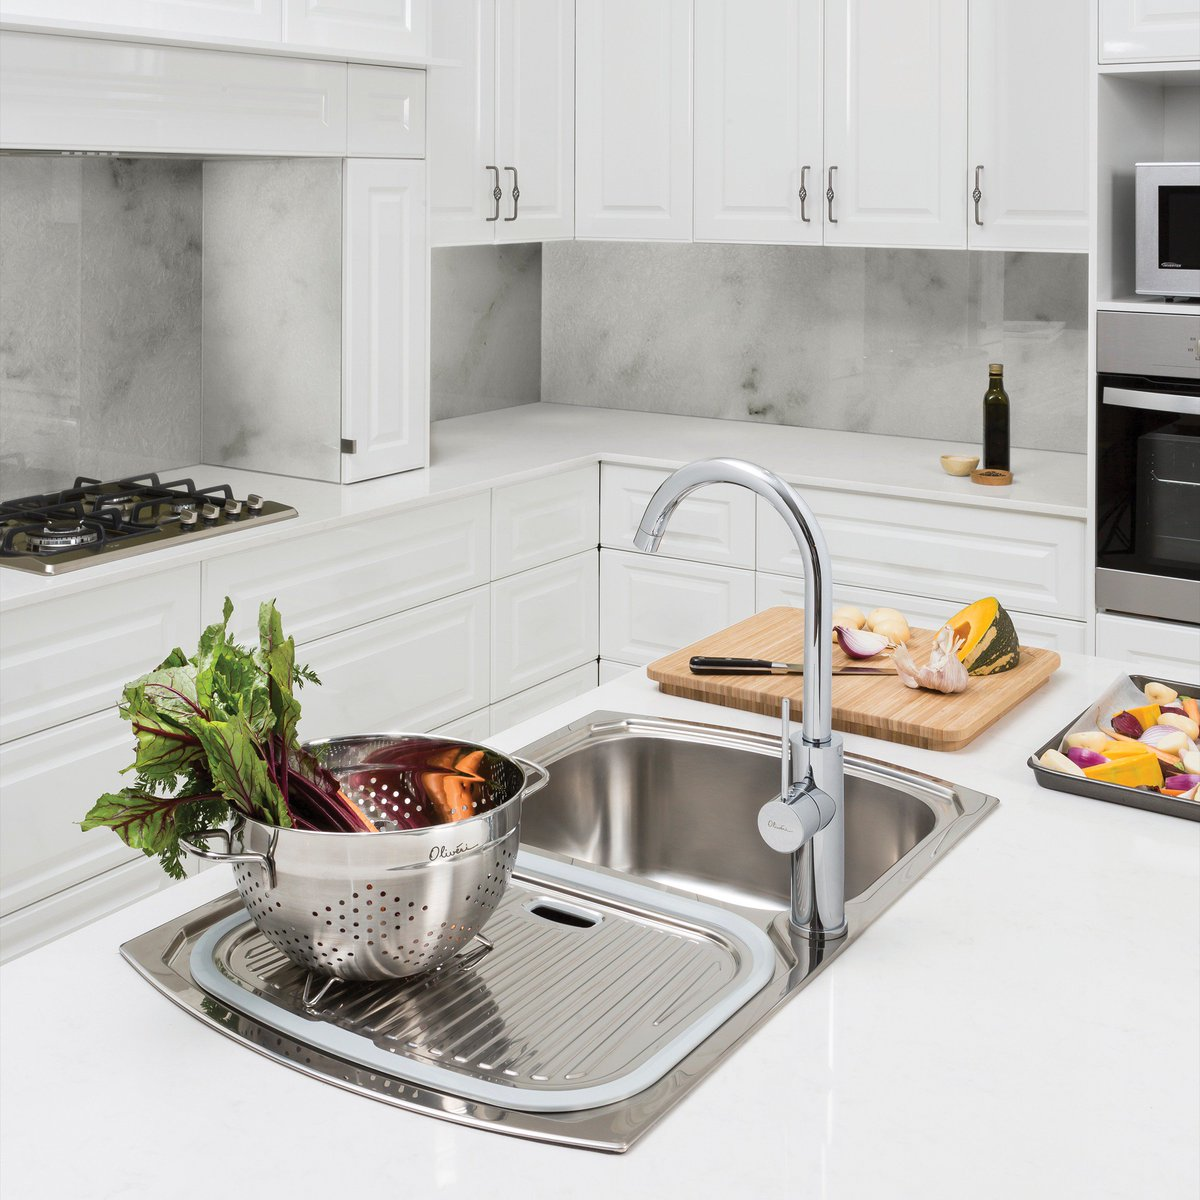 Oliveri Australia On Twitter Featuring Our Australia Made Double Bowl Monet Sink To Check Out Our Range Of Australian Made Sinks Head To Https T Co L69igs0f6l Oliveriau Adelaide Southaustralia Australianmadesink Monet Italianmadetap Mito